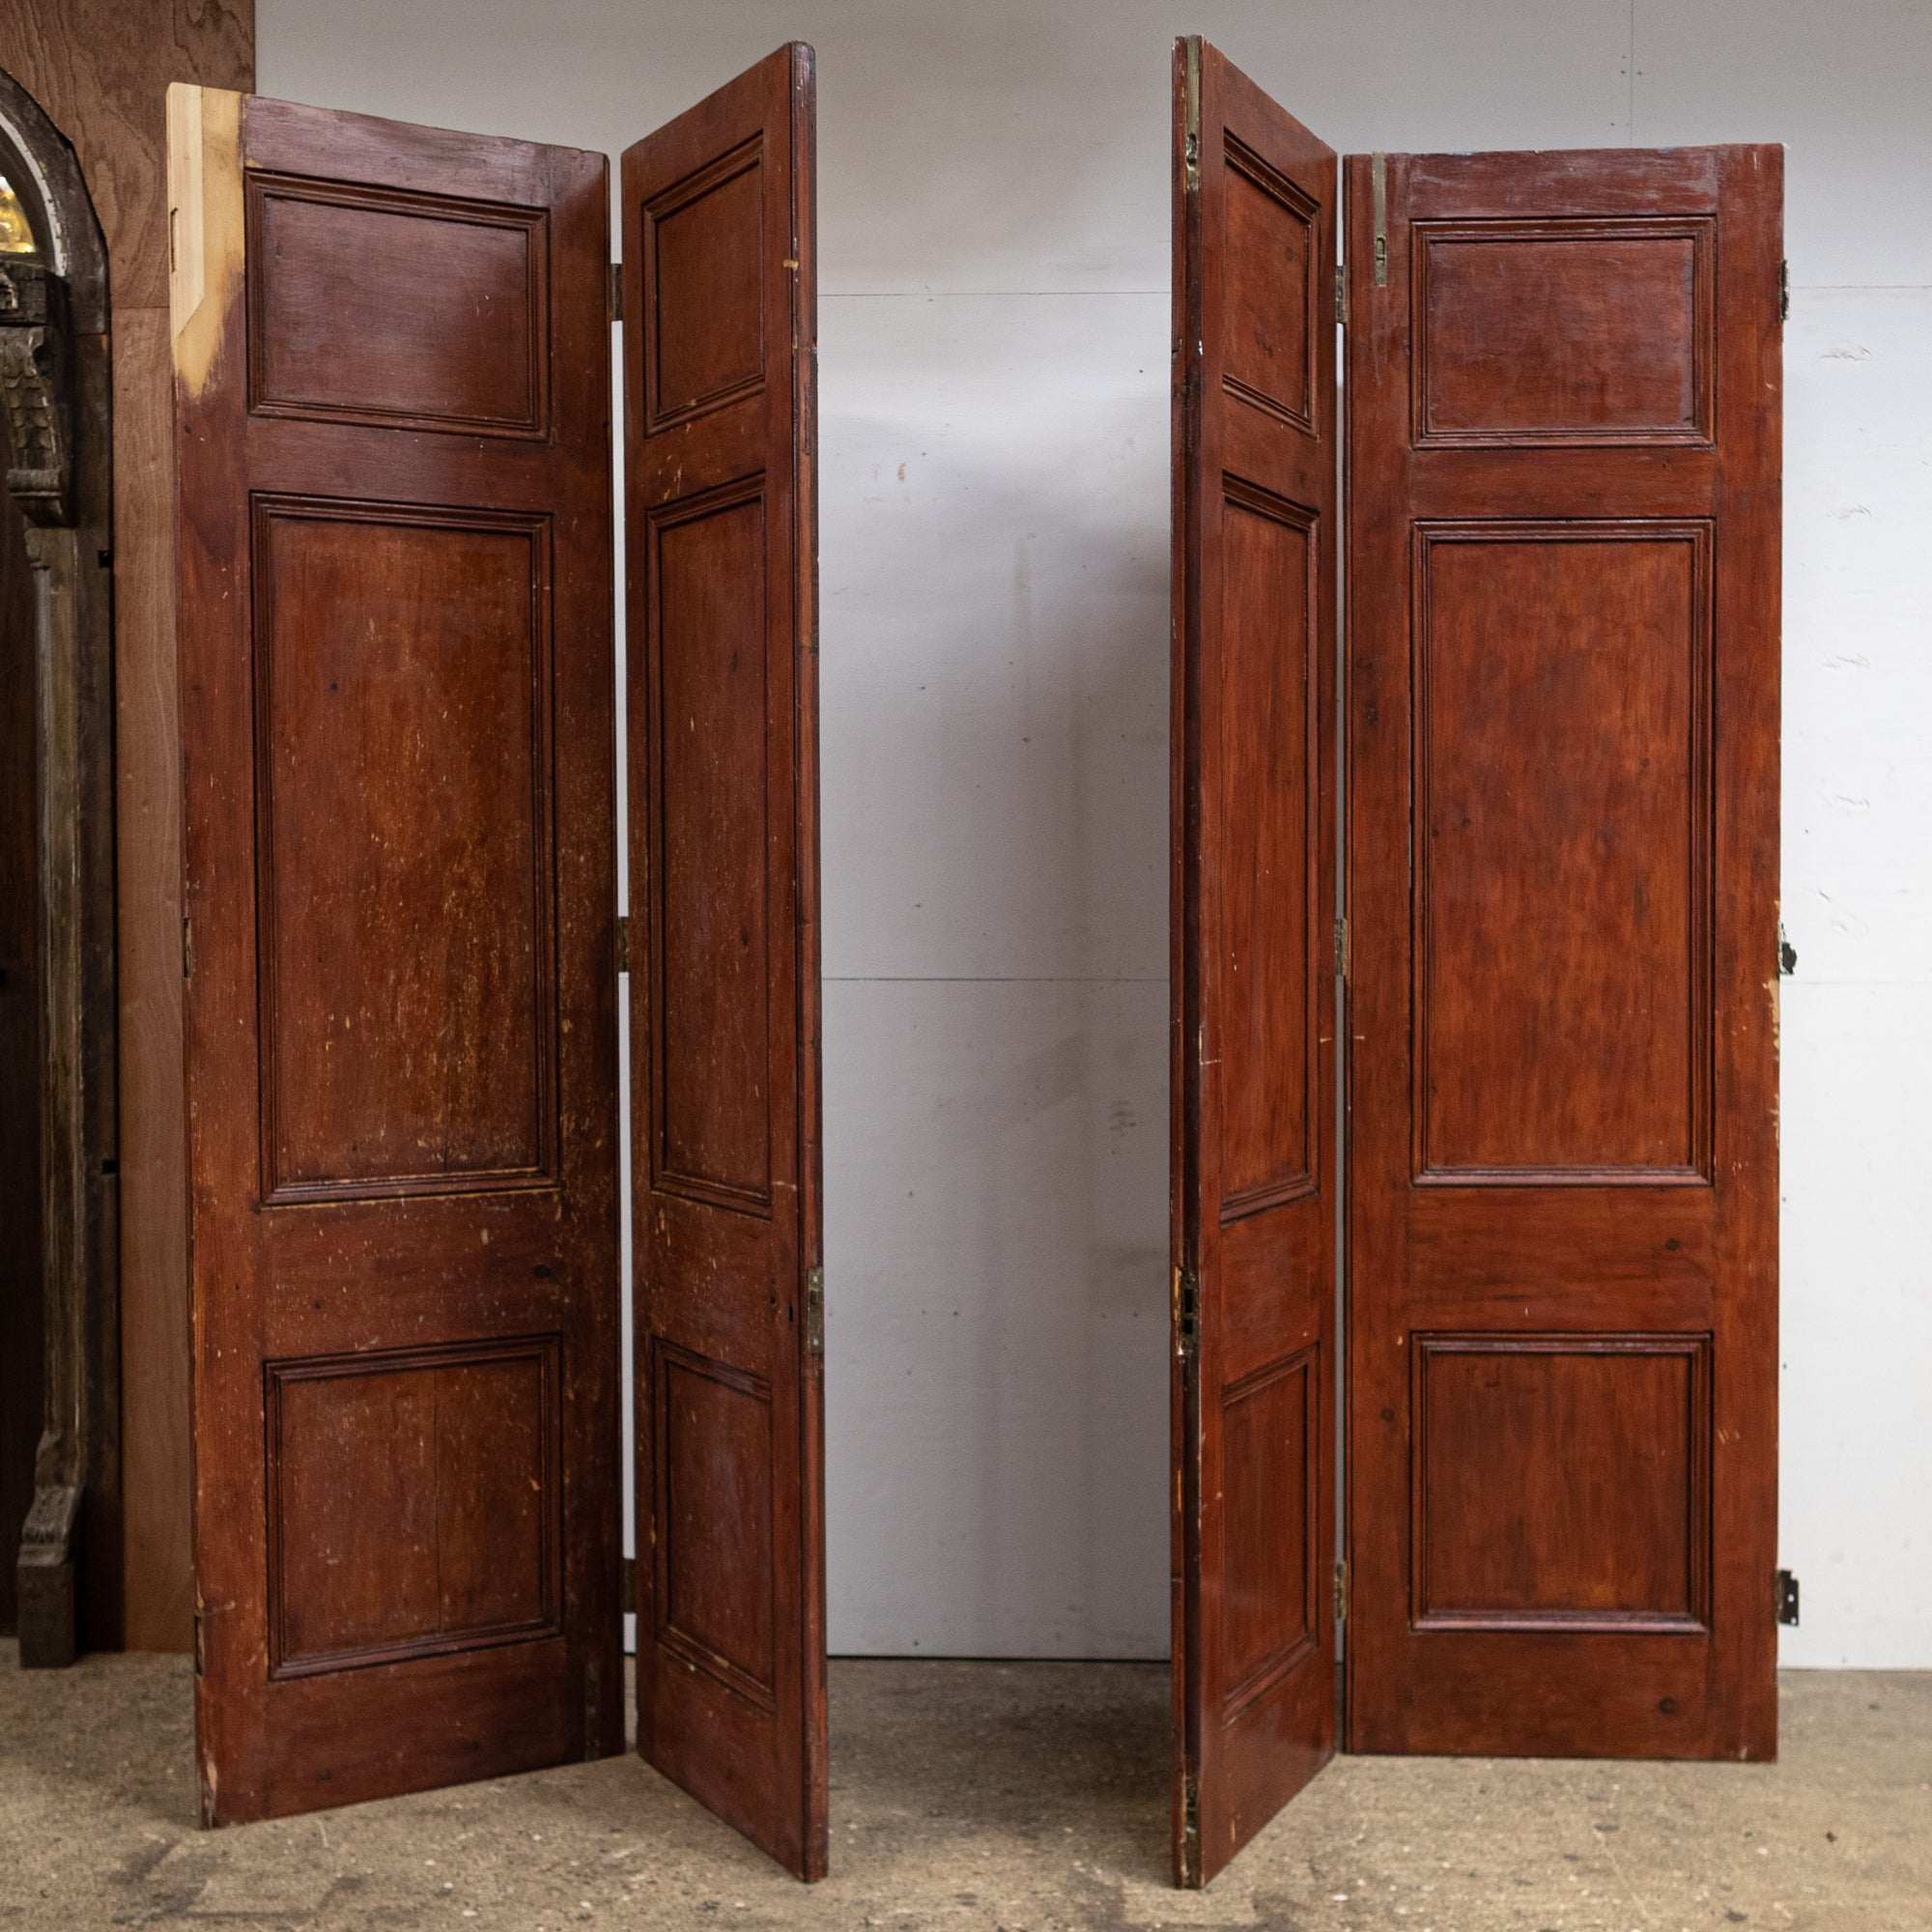 Antique Grand Pine Bi-Folding Doors 255cm Tall X 268cm Wide | The Architectural Forum